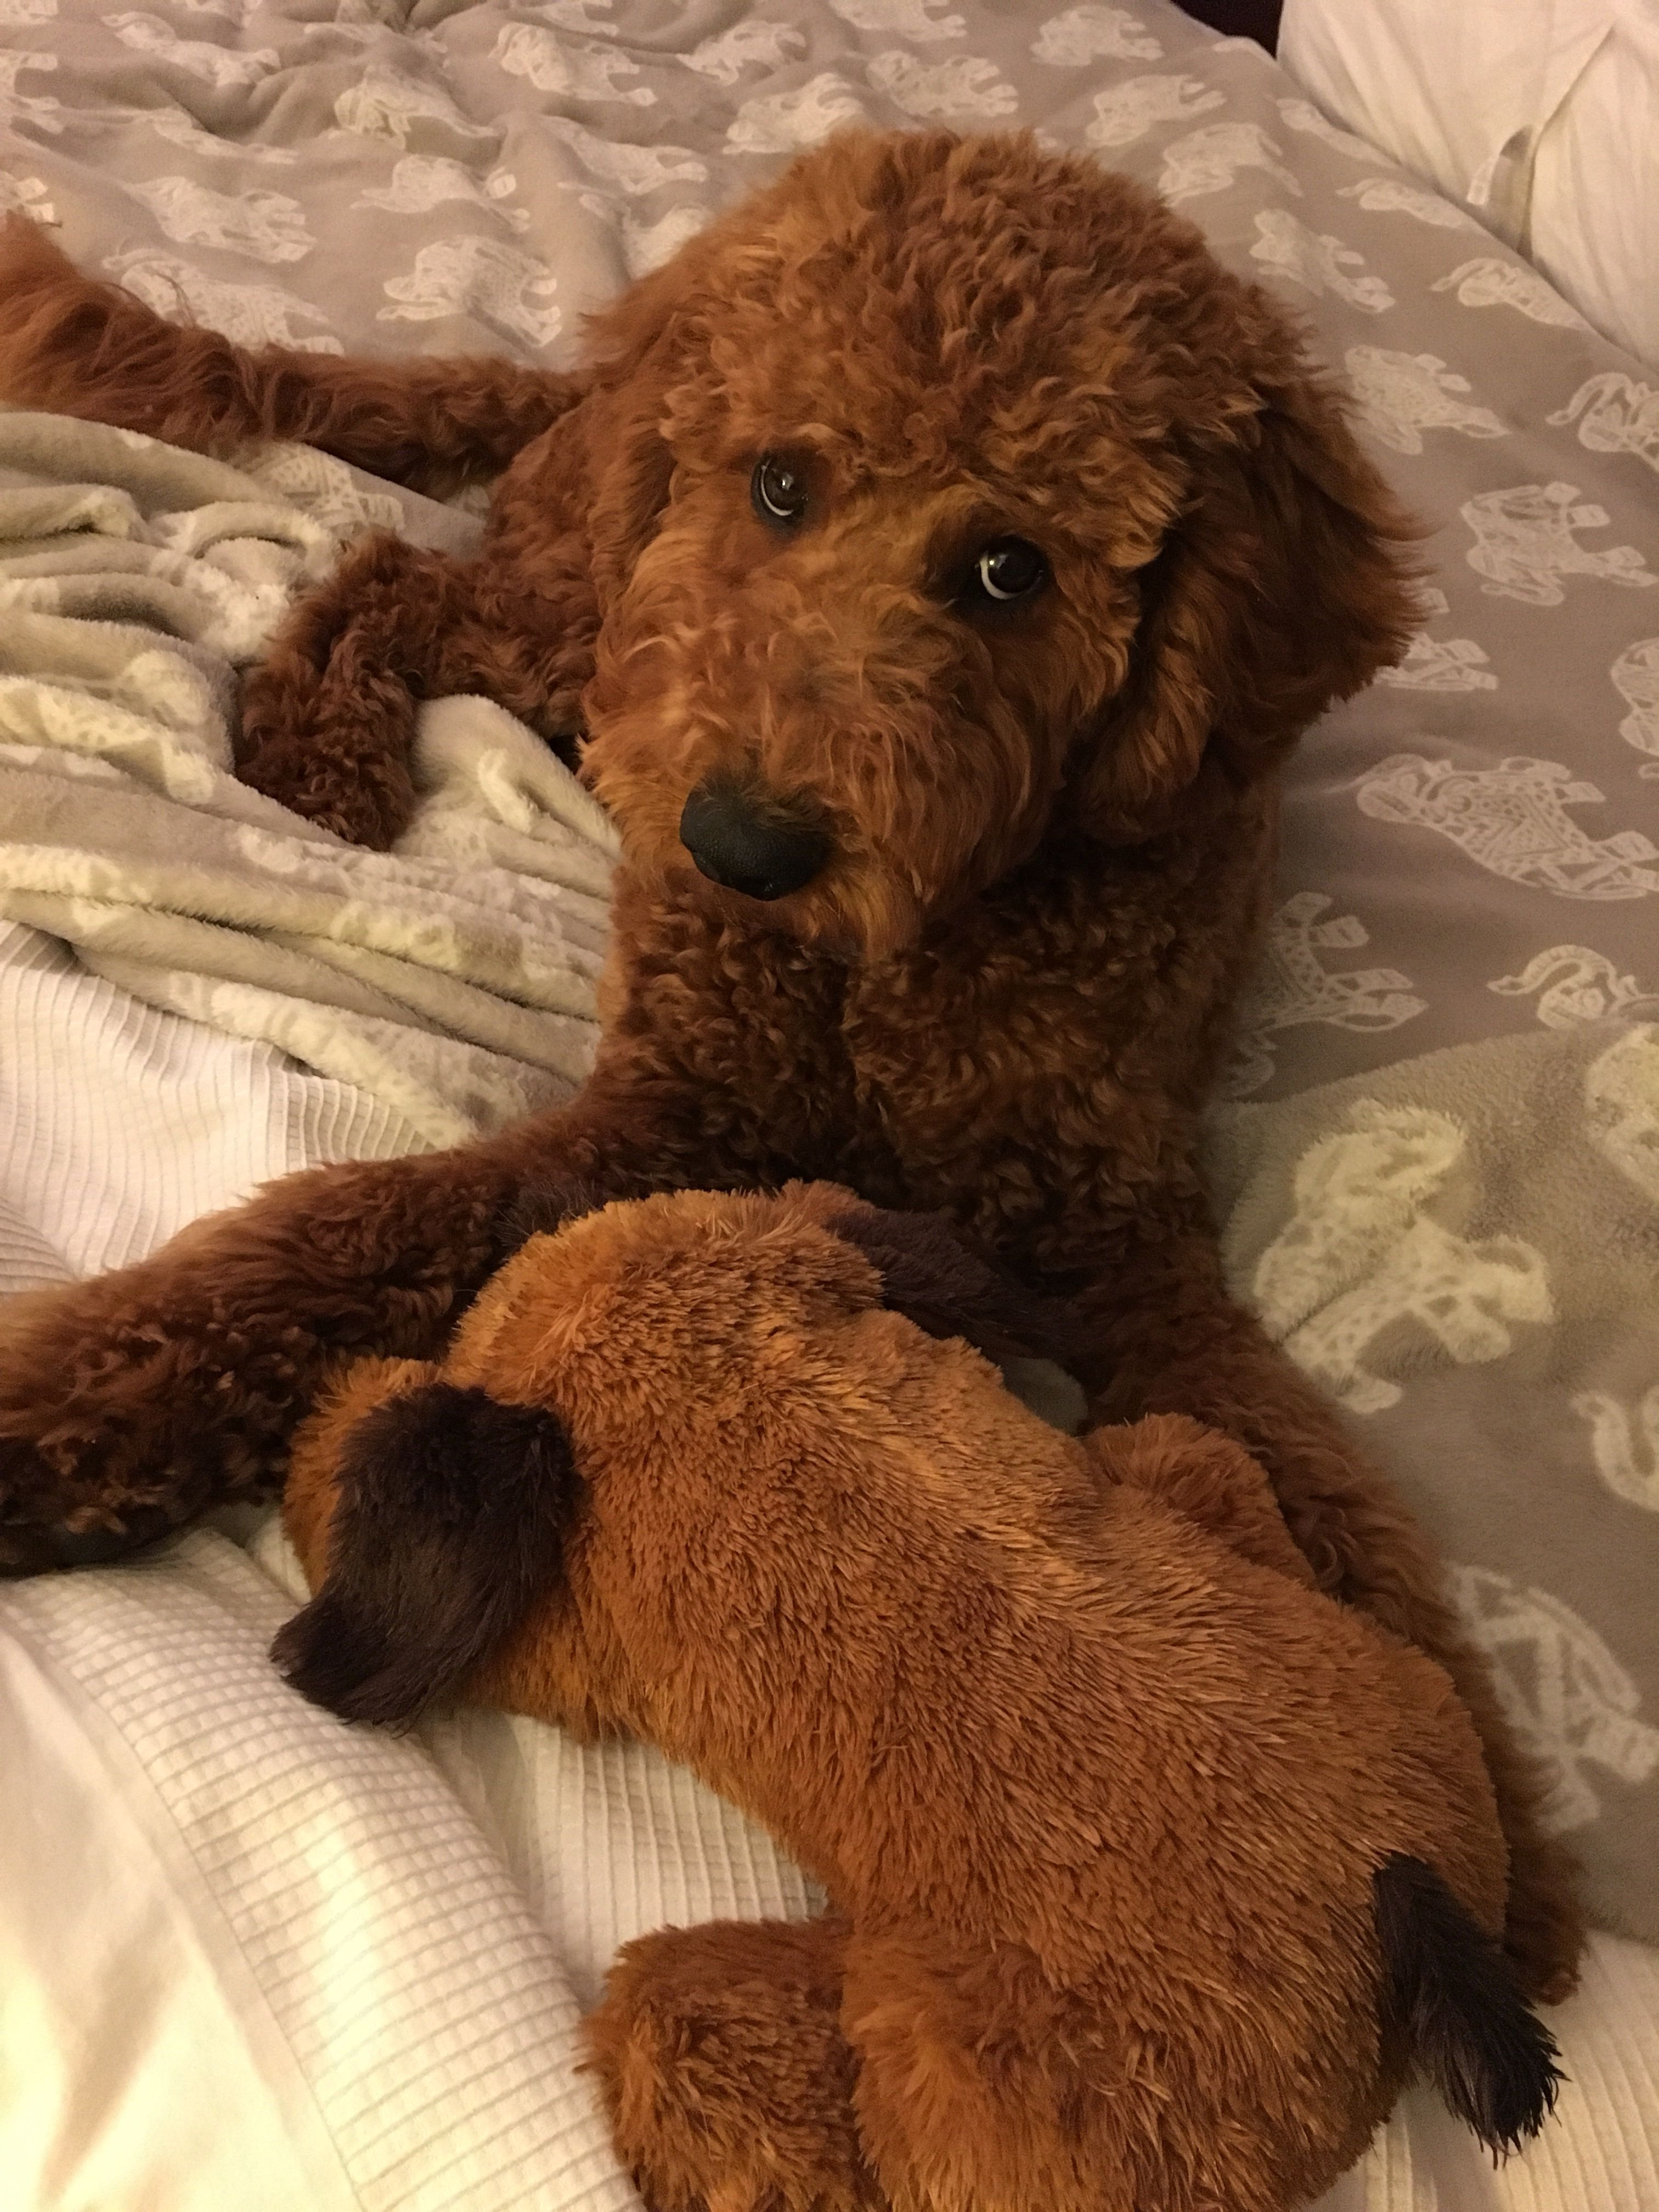 Red goldendoodle snuggles his teddy. Red goldendoodle